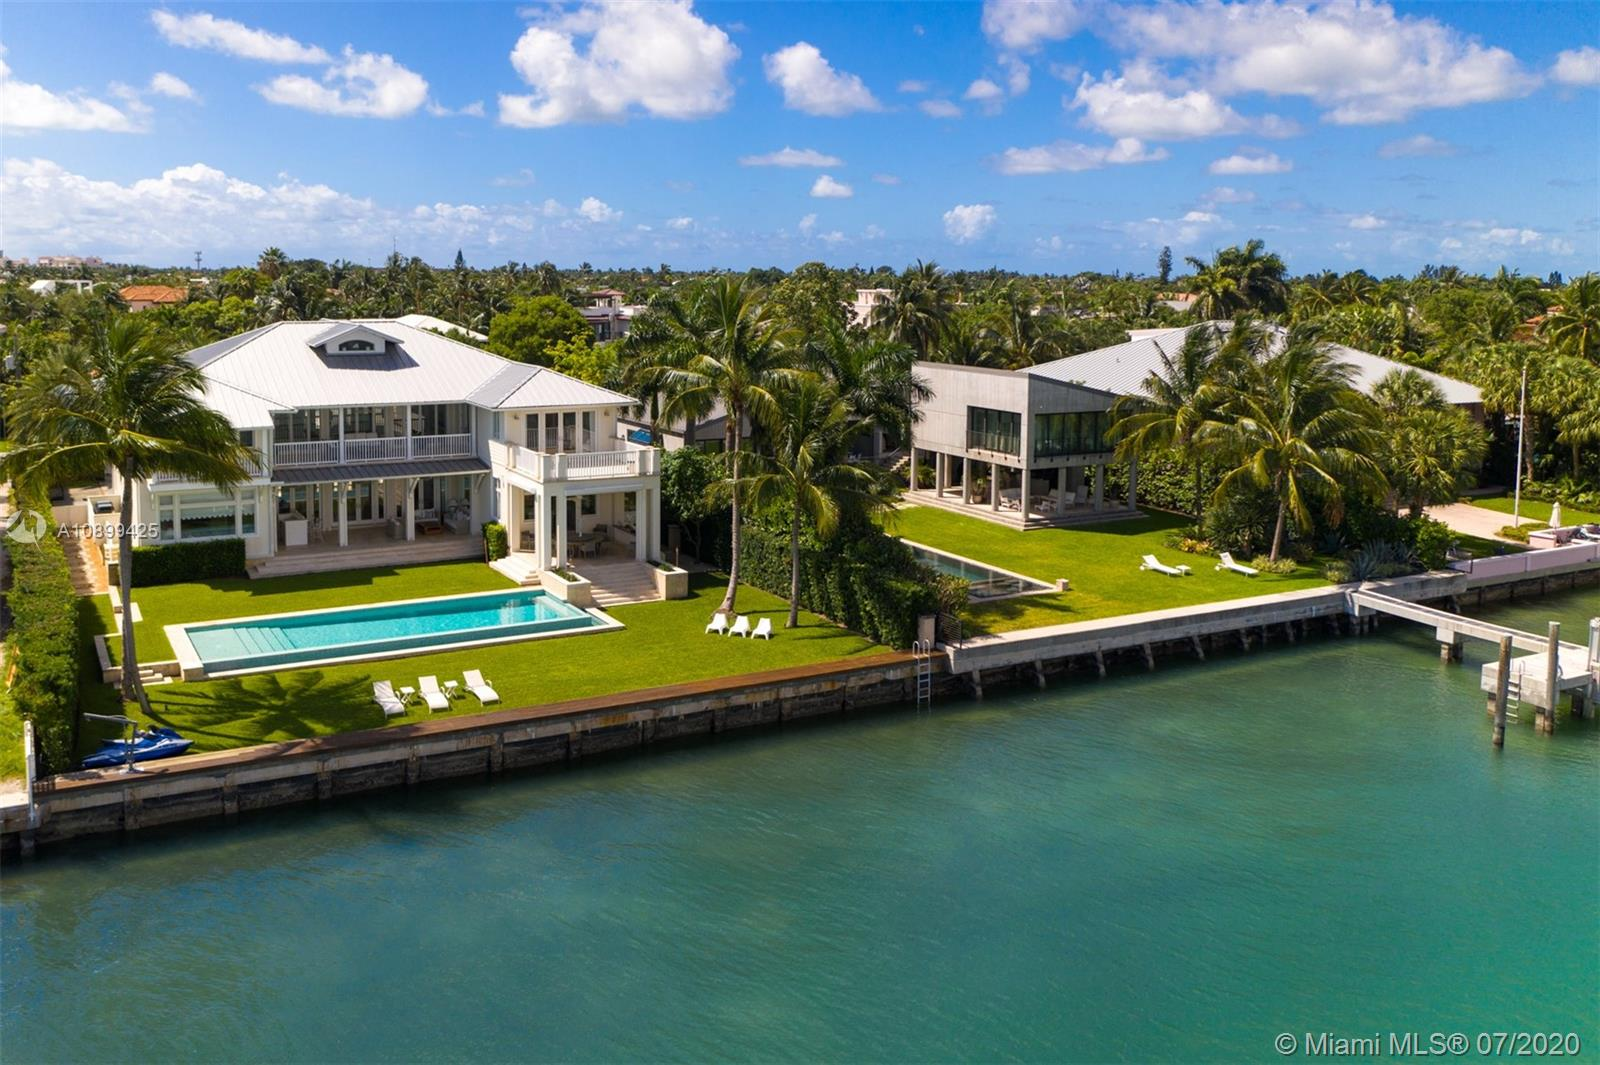 Key Biscayne Miami Real Estate Trends Spending too much time in soccer games at school, his low academic. miami real estate trends